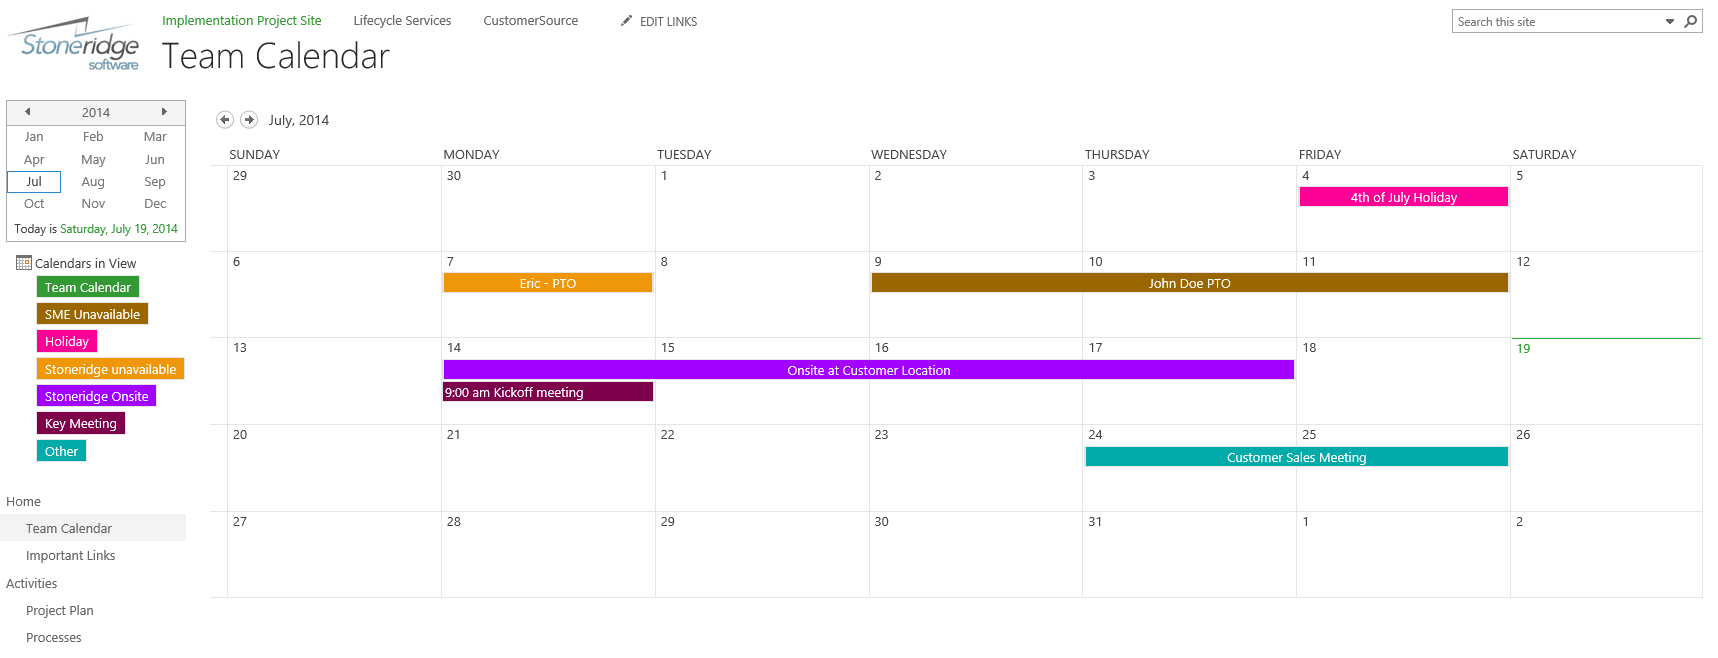 Creating A Color Coded Calendar In Sharepoint Online intended for Sharepoint Calendar Overlay Duplicate Events